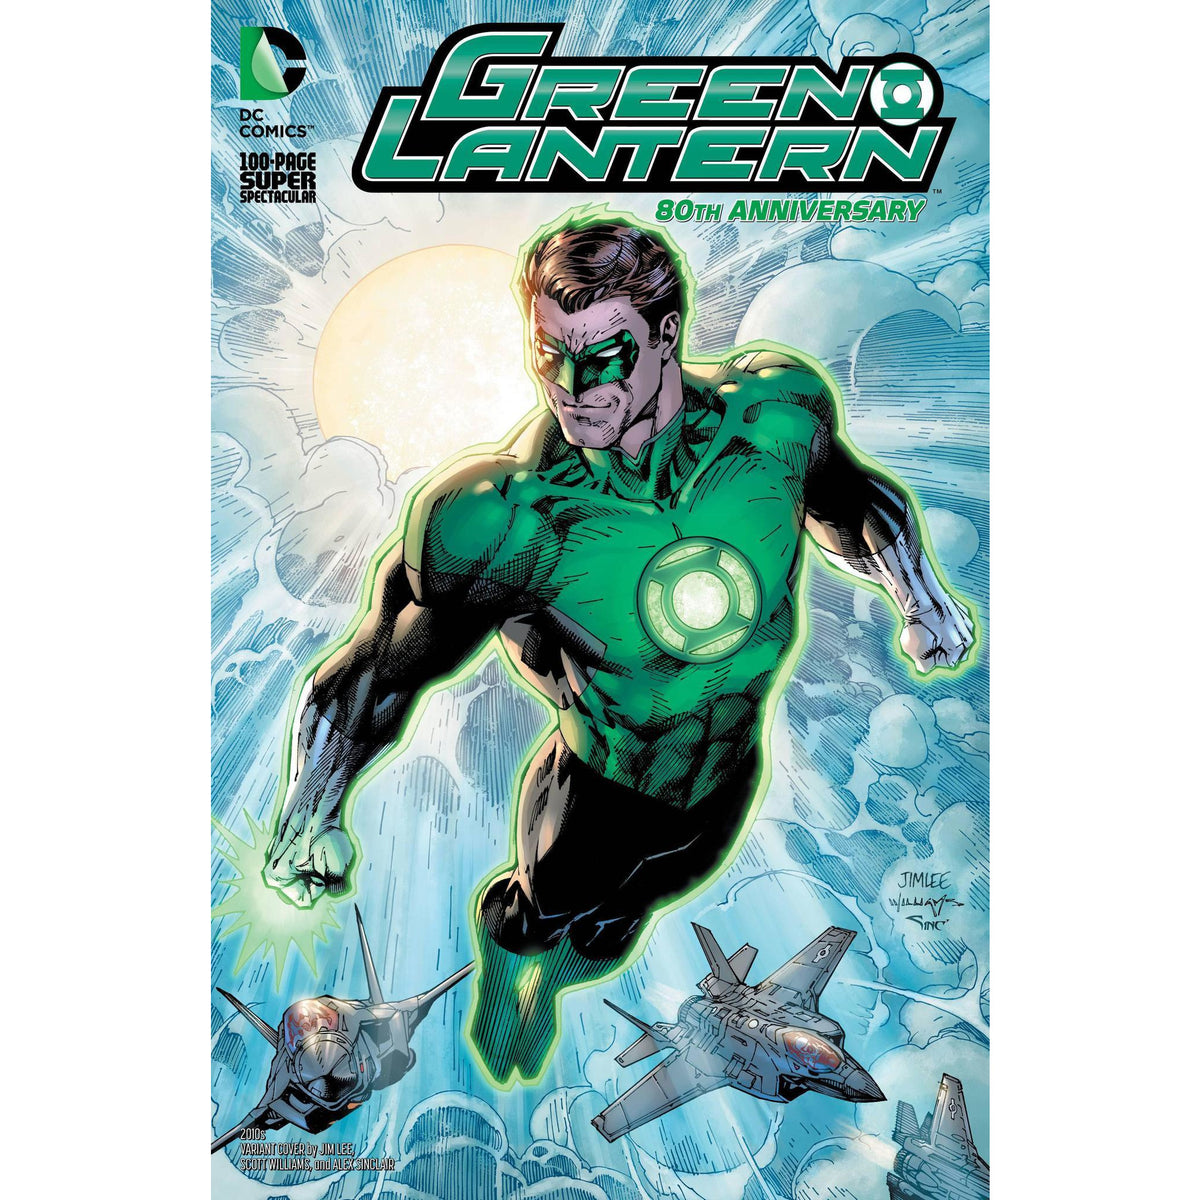 GREEN LANTERN 80TH ANNIVERSARY 100 PAGE SUPER SPECTACULAR #1 - 2010S LEE COVER I - DC COMICS